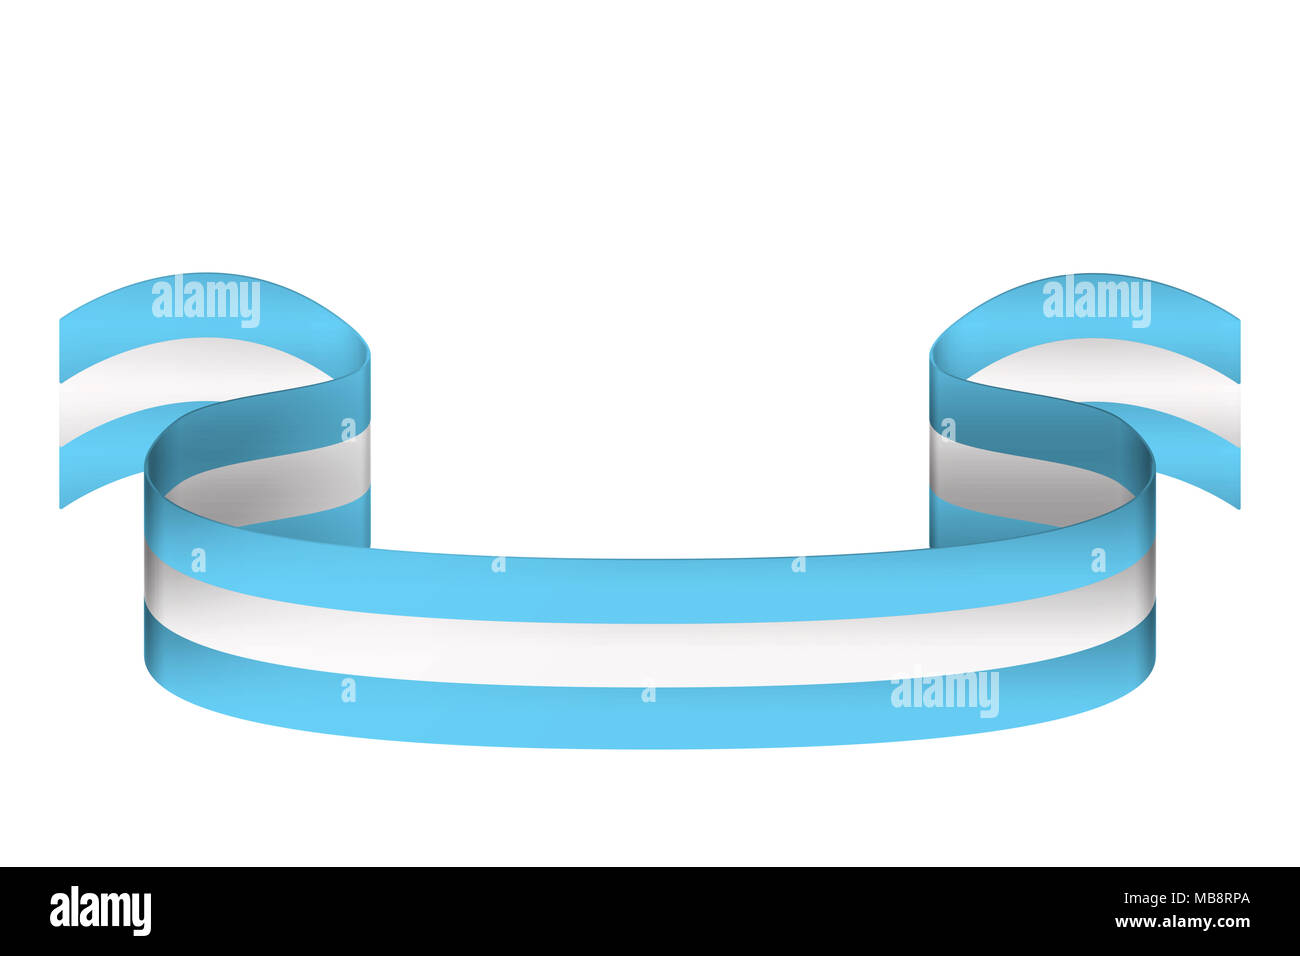 Volumetric ribbon in three colors of Argentina flag on white background with place for inscription - Stock Image